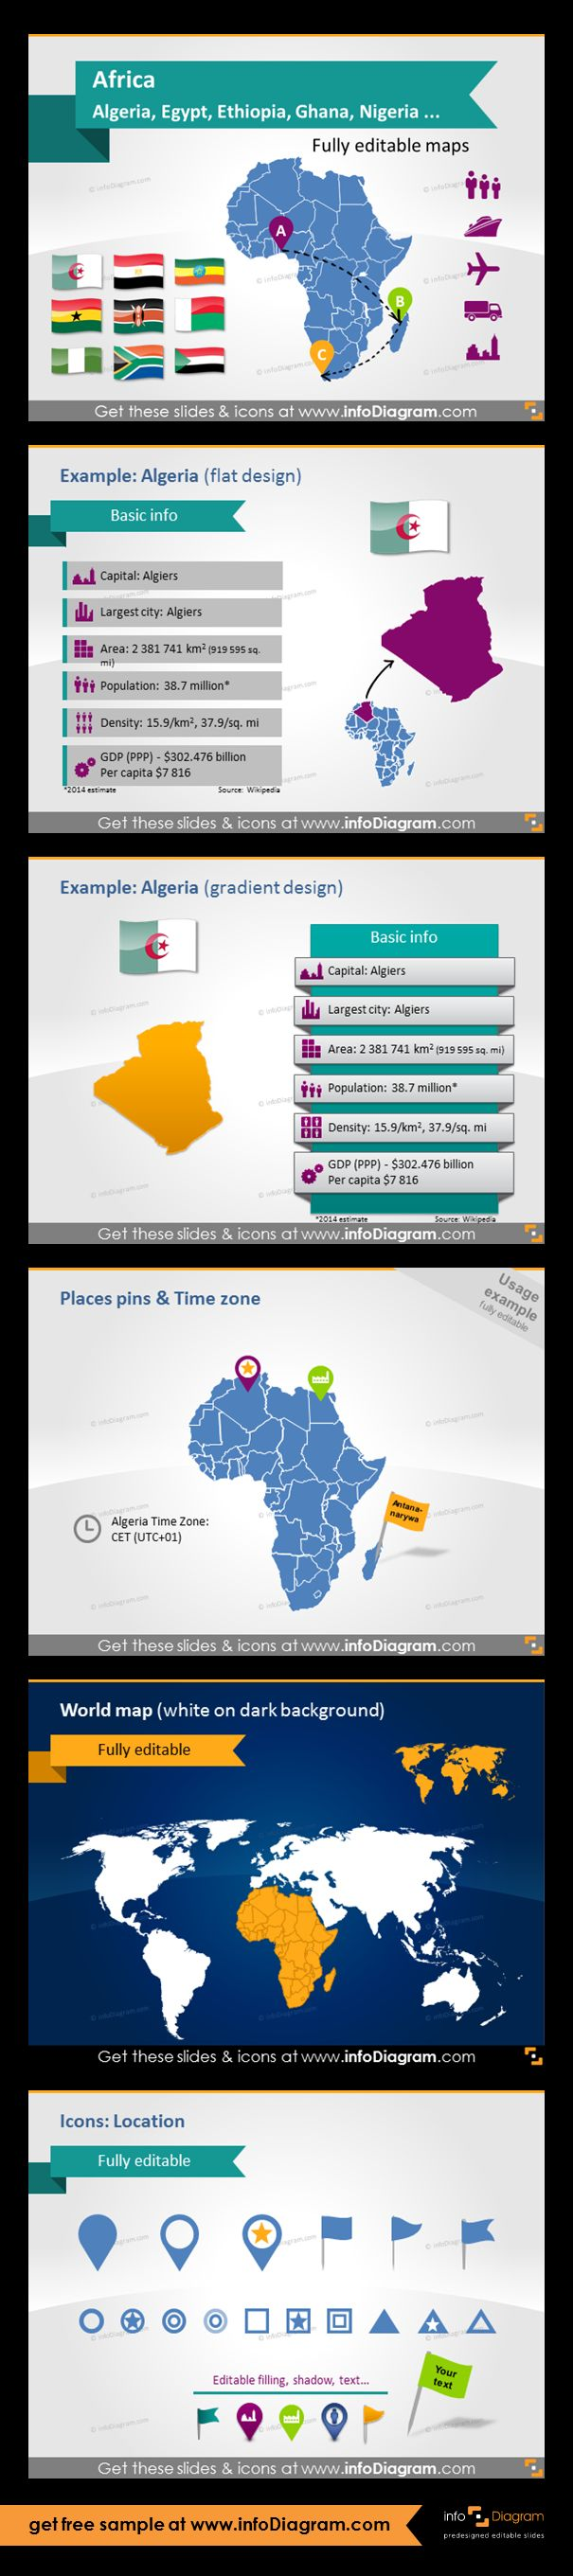 Africa countries - editable PowerPoint maps, localization and transport icons, country statistics. Fully editable maps, icons, arrows. Country statistics data: Population, Density, Area, GDP, Largest city, Capital. World map with Africa highlighted. example of using pins and flags for indicating a place. Location symbols: flags and pics.